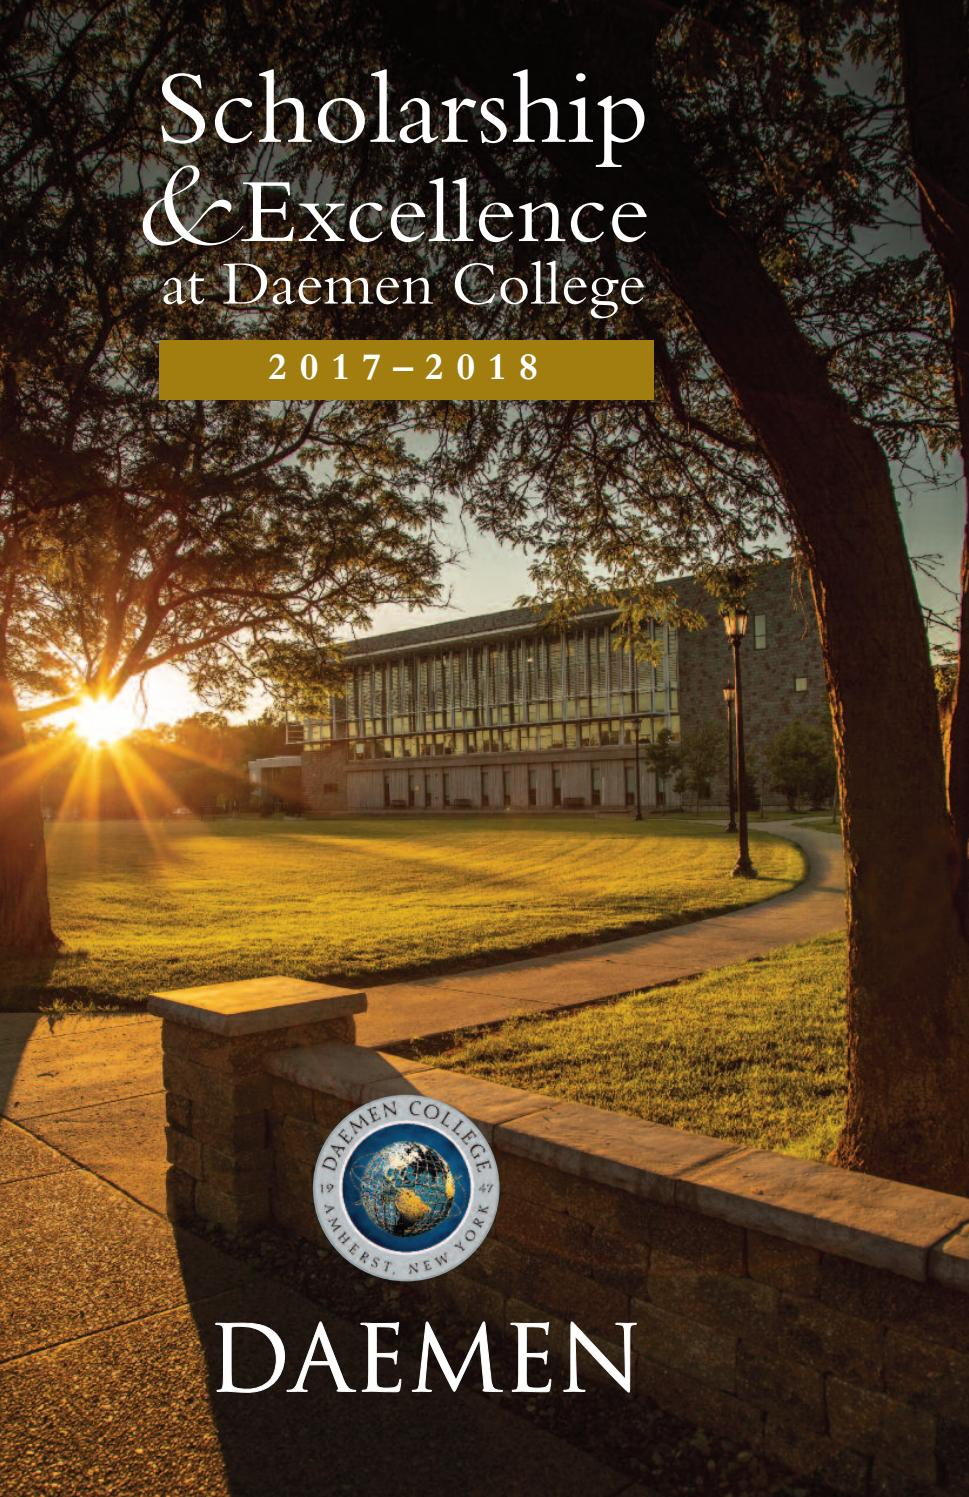 Faculty Scholarship and Excellence Brochure 2017-2018 by Daemen